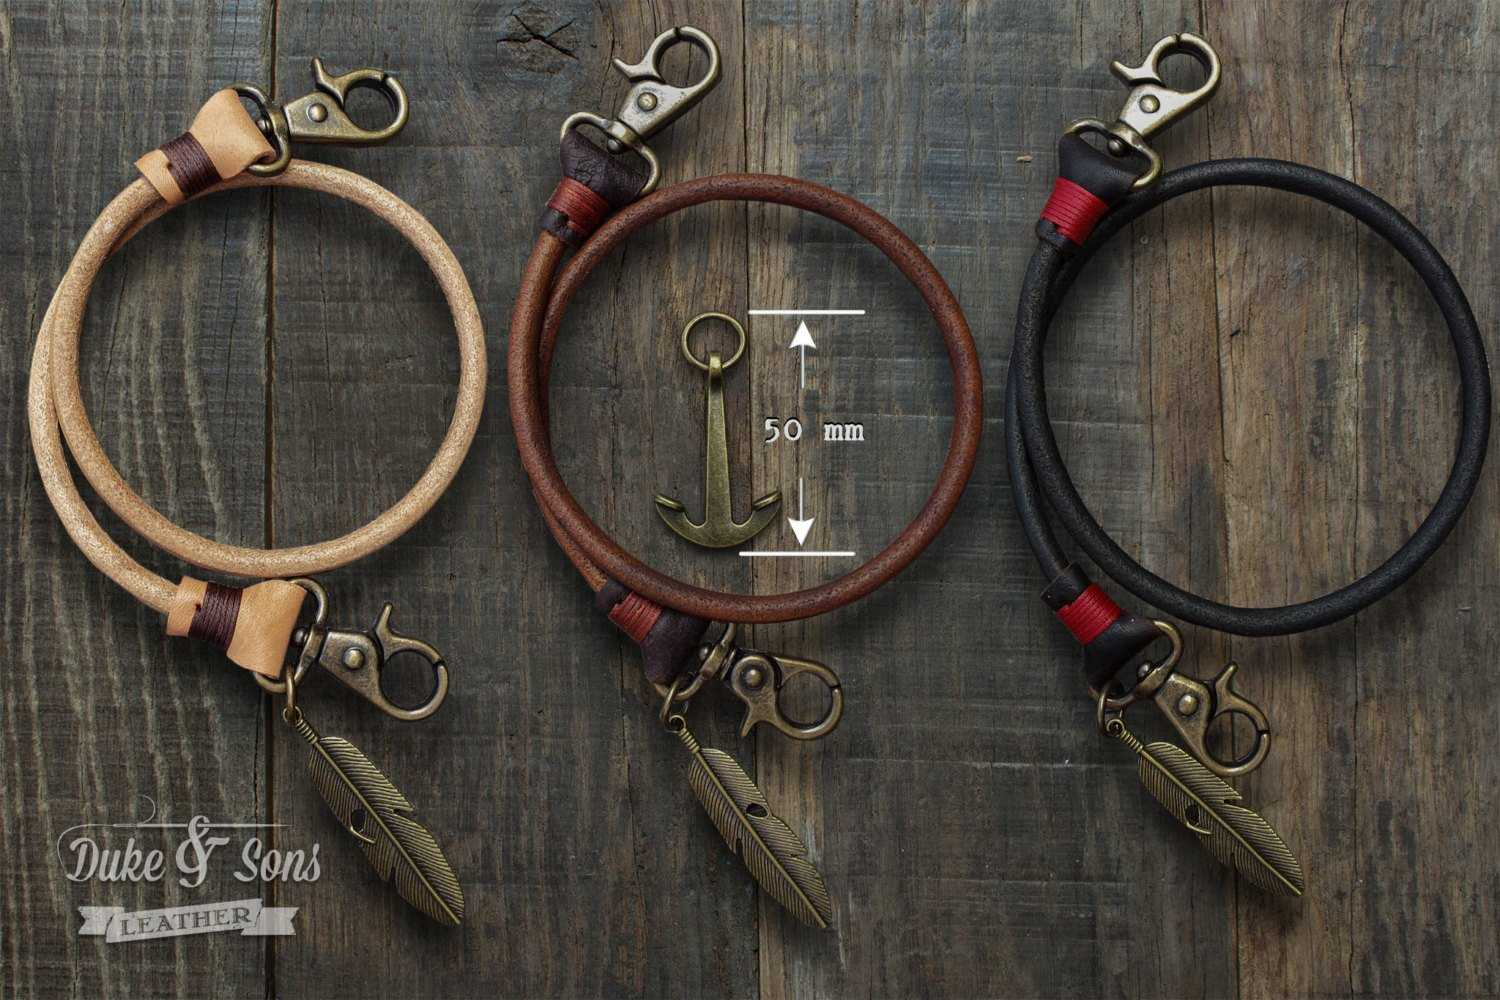 Keychain (Brown) 50 cm, with old bronze feather* | Duke & Sons Leather